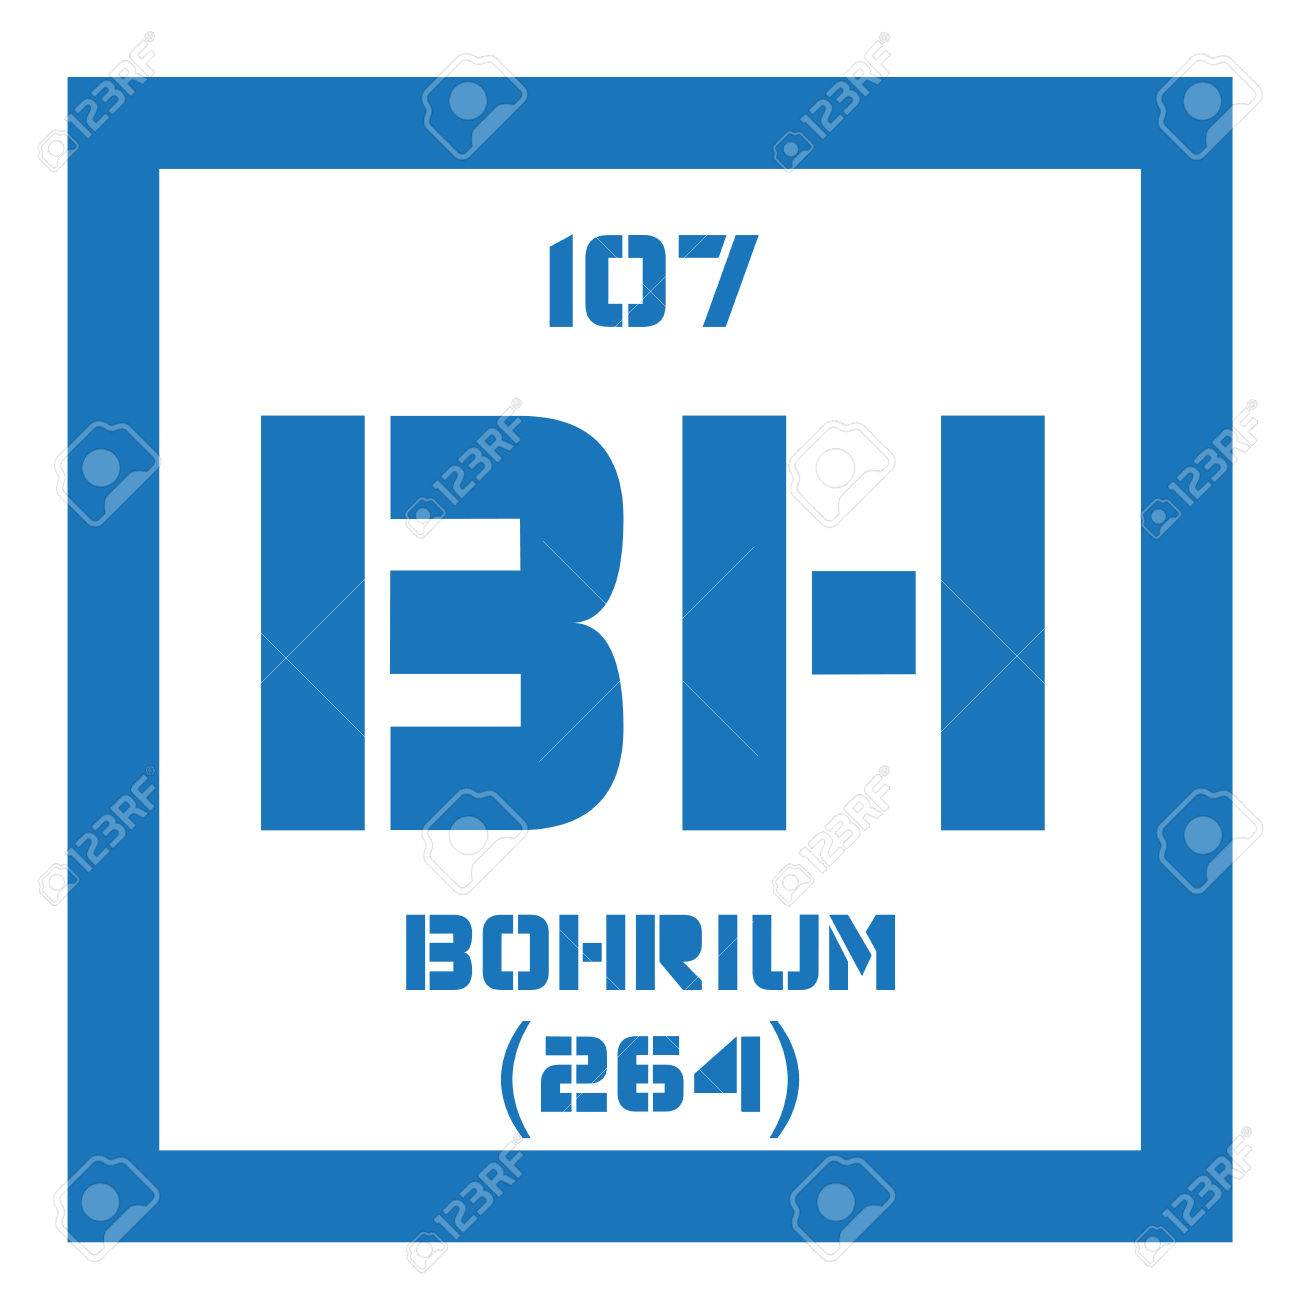 Bohrium chemical element radioactive synthetic element colored bohrium chemical element radioactive synthetic element colored icon with atomic number and atomic weight urtaz